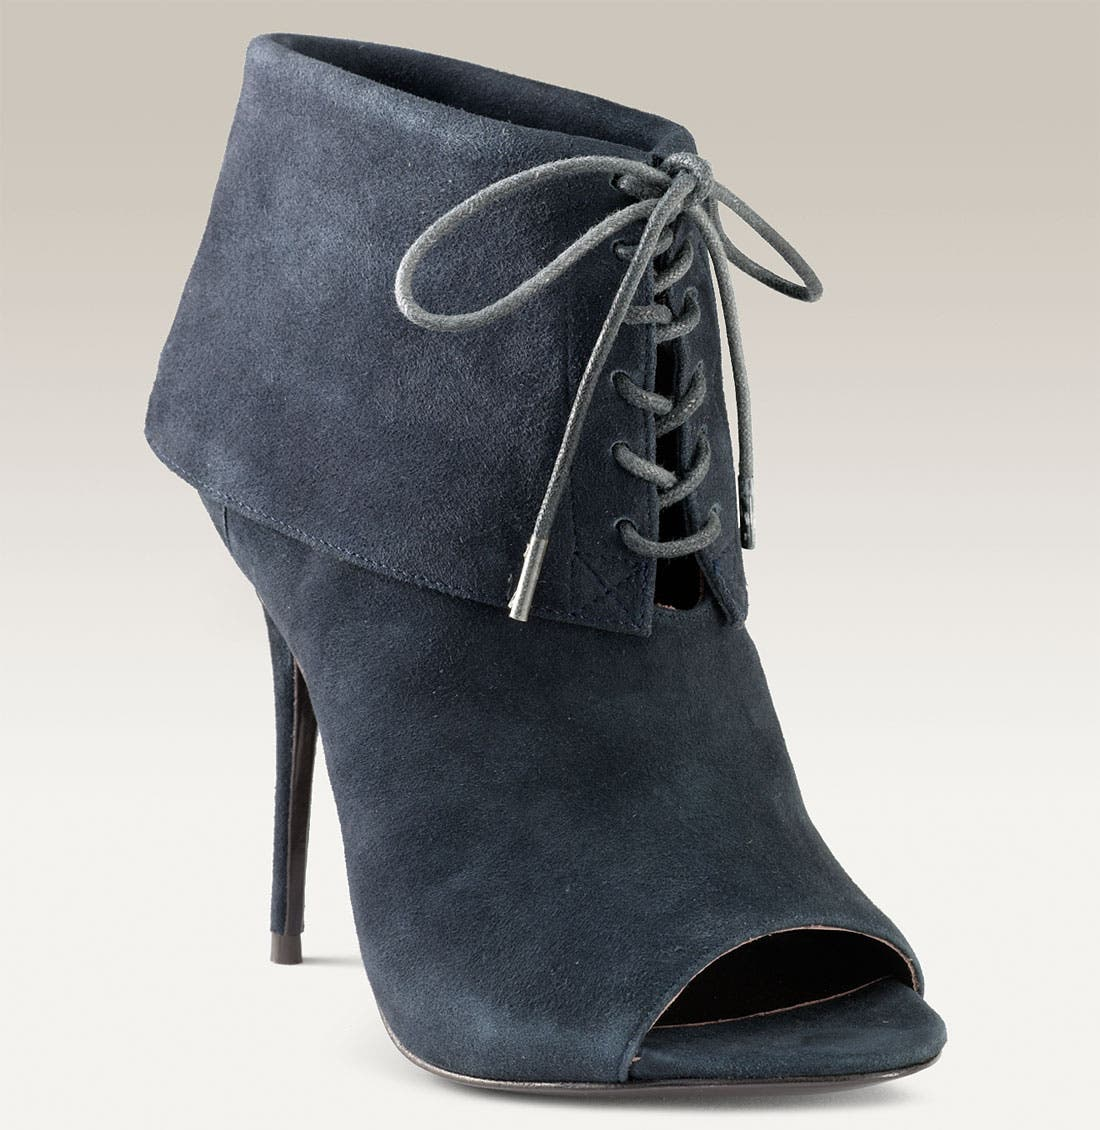 Alternate Image 1 Selected - Elizabeth and James 'E-Lizzy' Suede Bootie